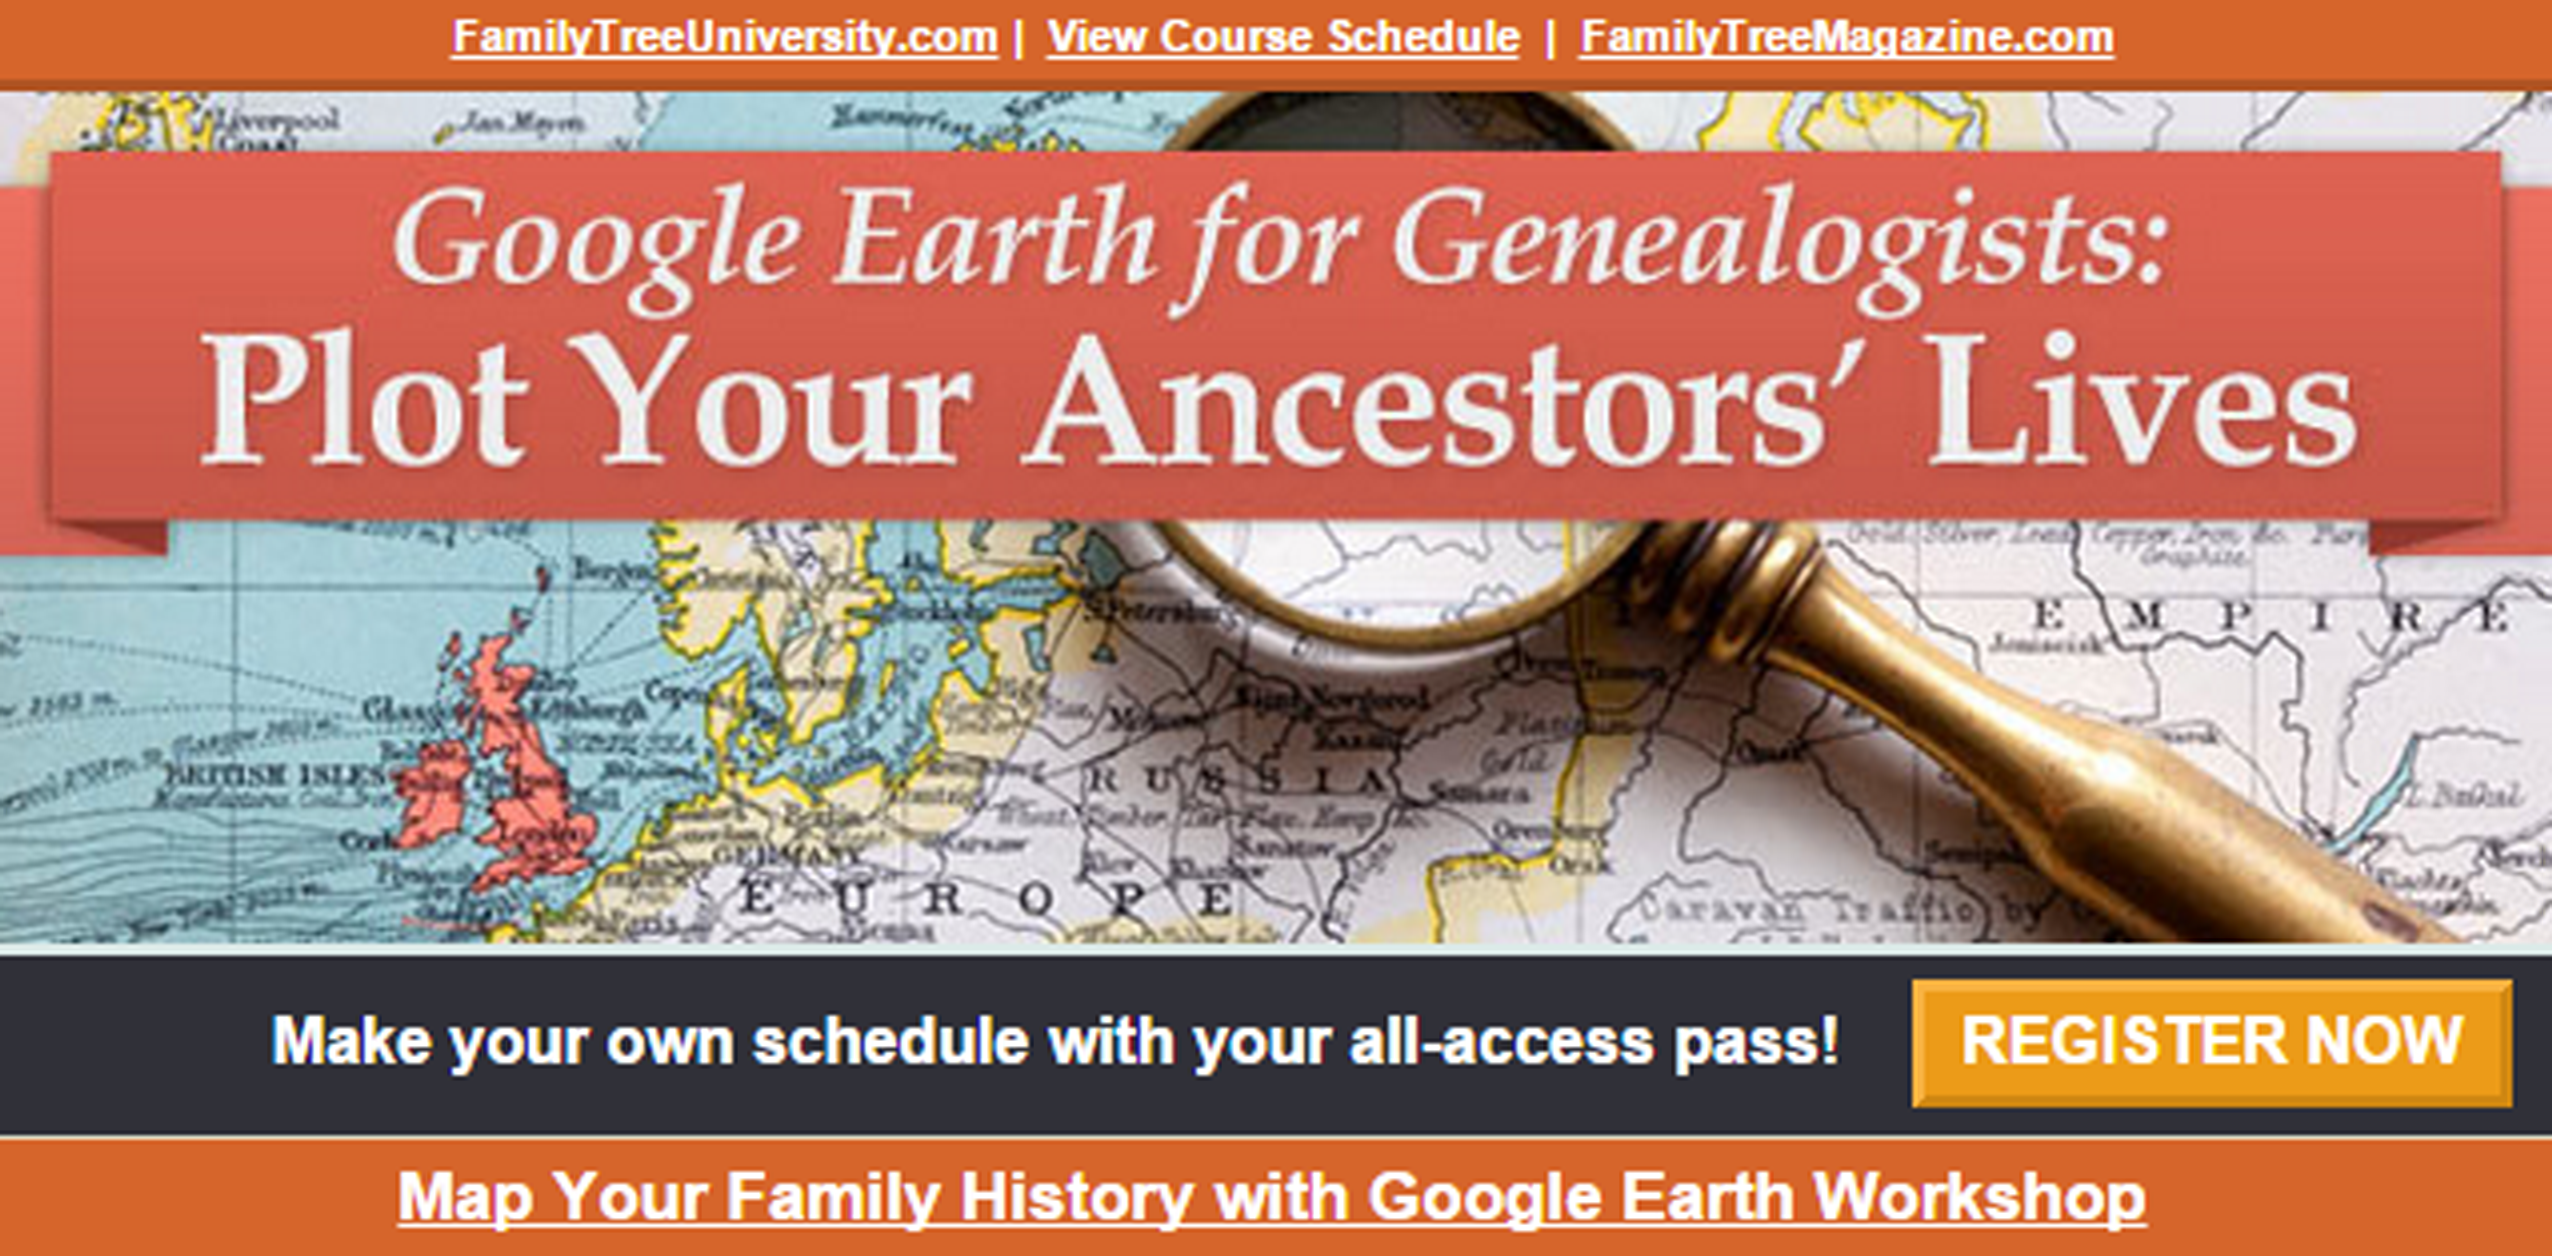 Google Earth for Genealogy: Get My Personalized Help